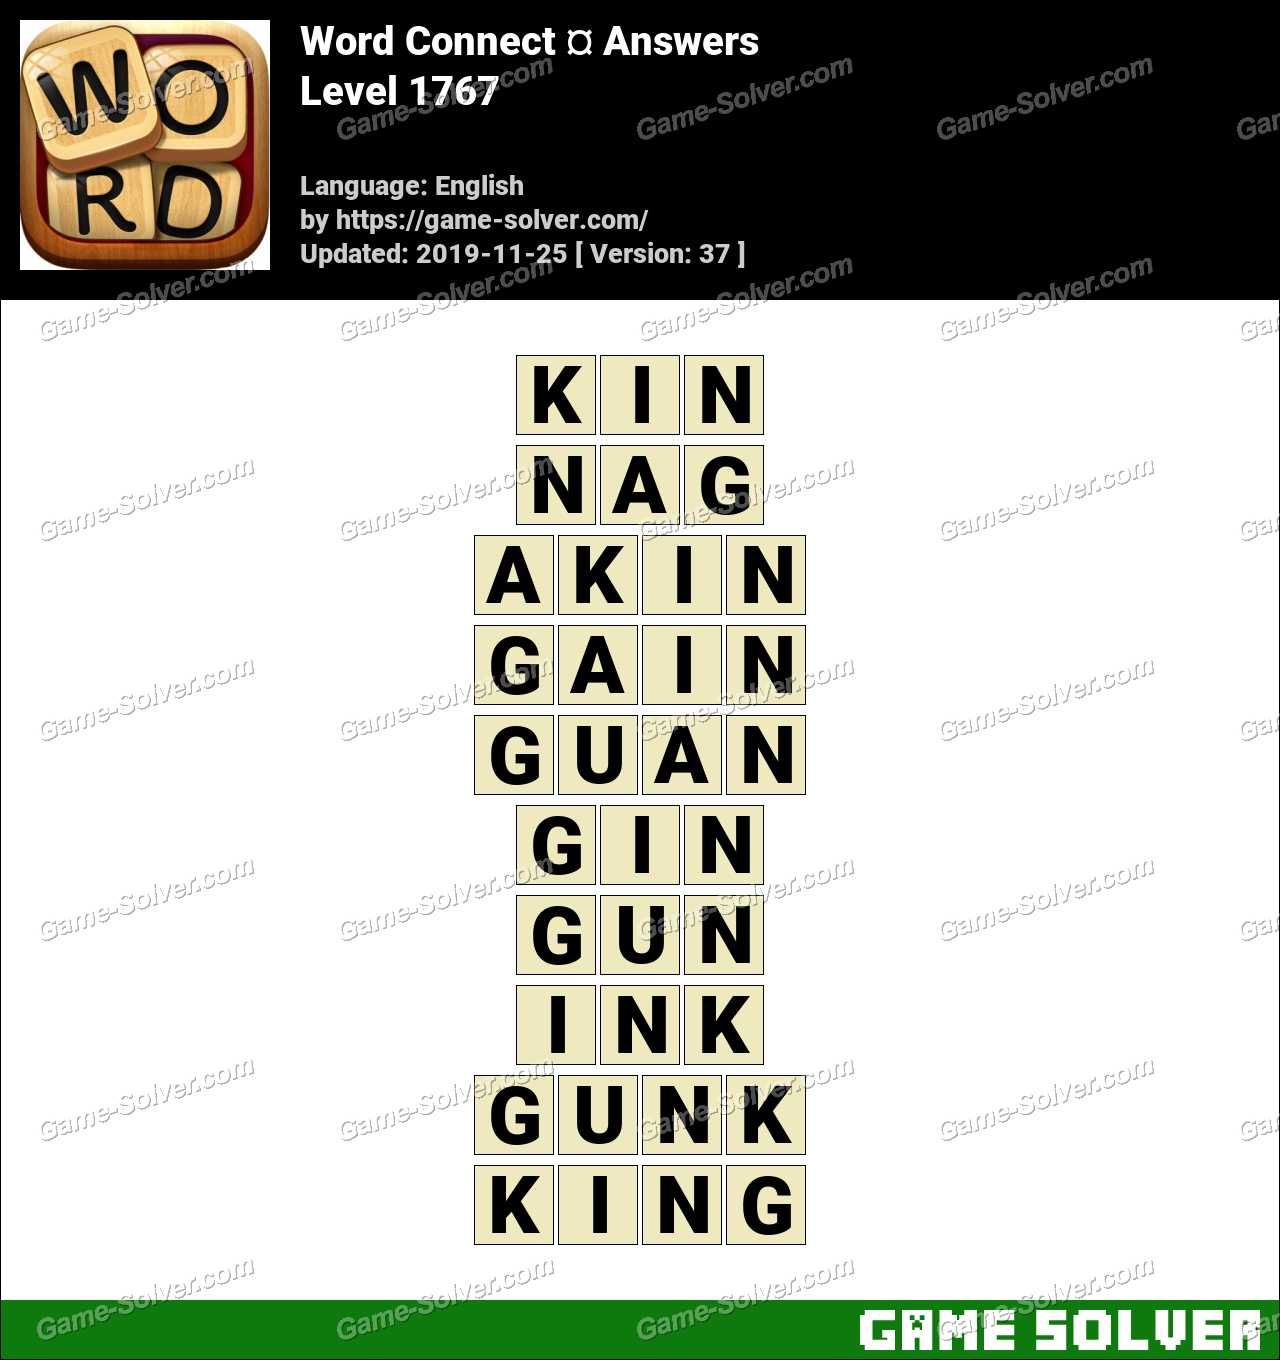 Word Connect Level 1767 Answers